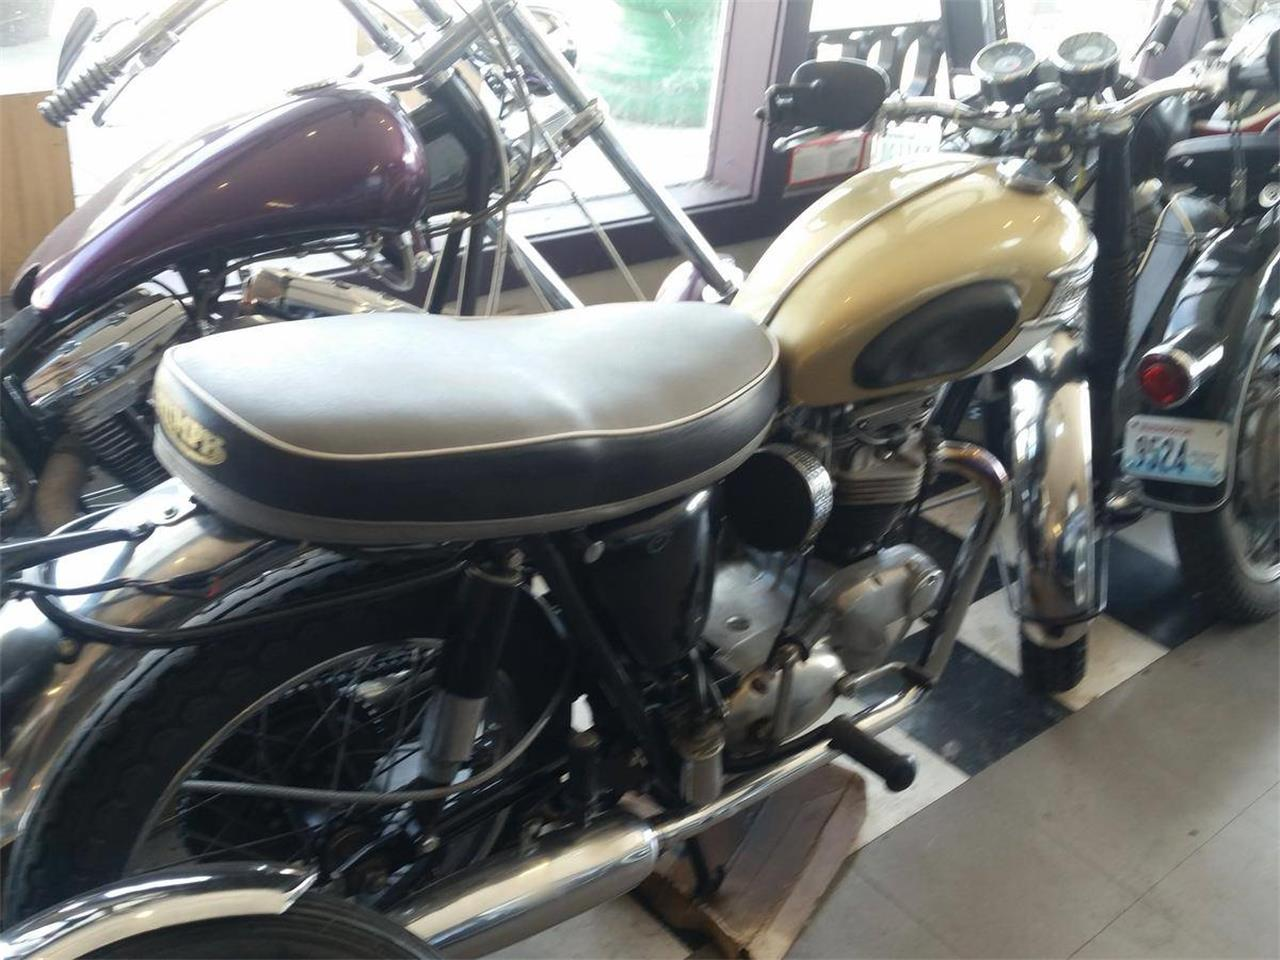 Large Picture of '64 Triumph T120TT located in Washington - $13,995.00 - PNHL